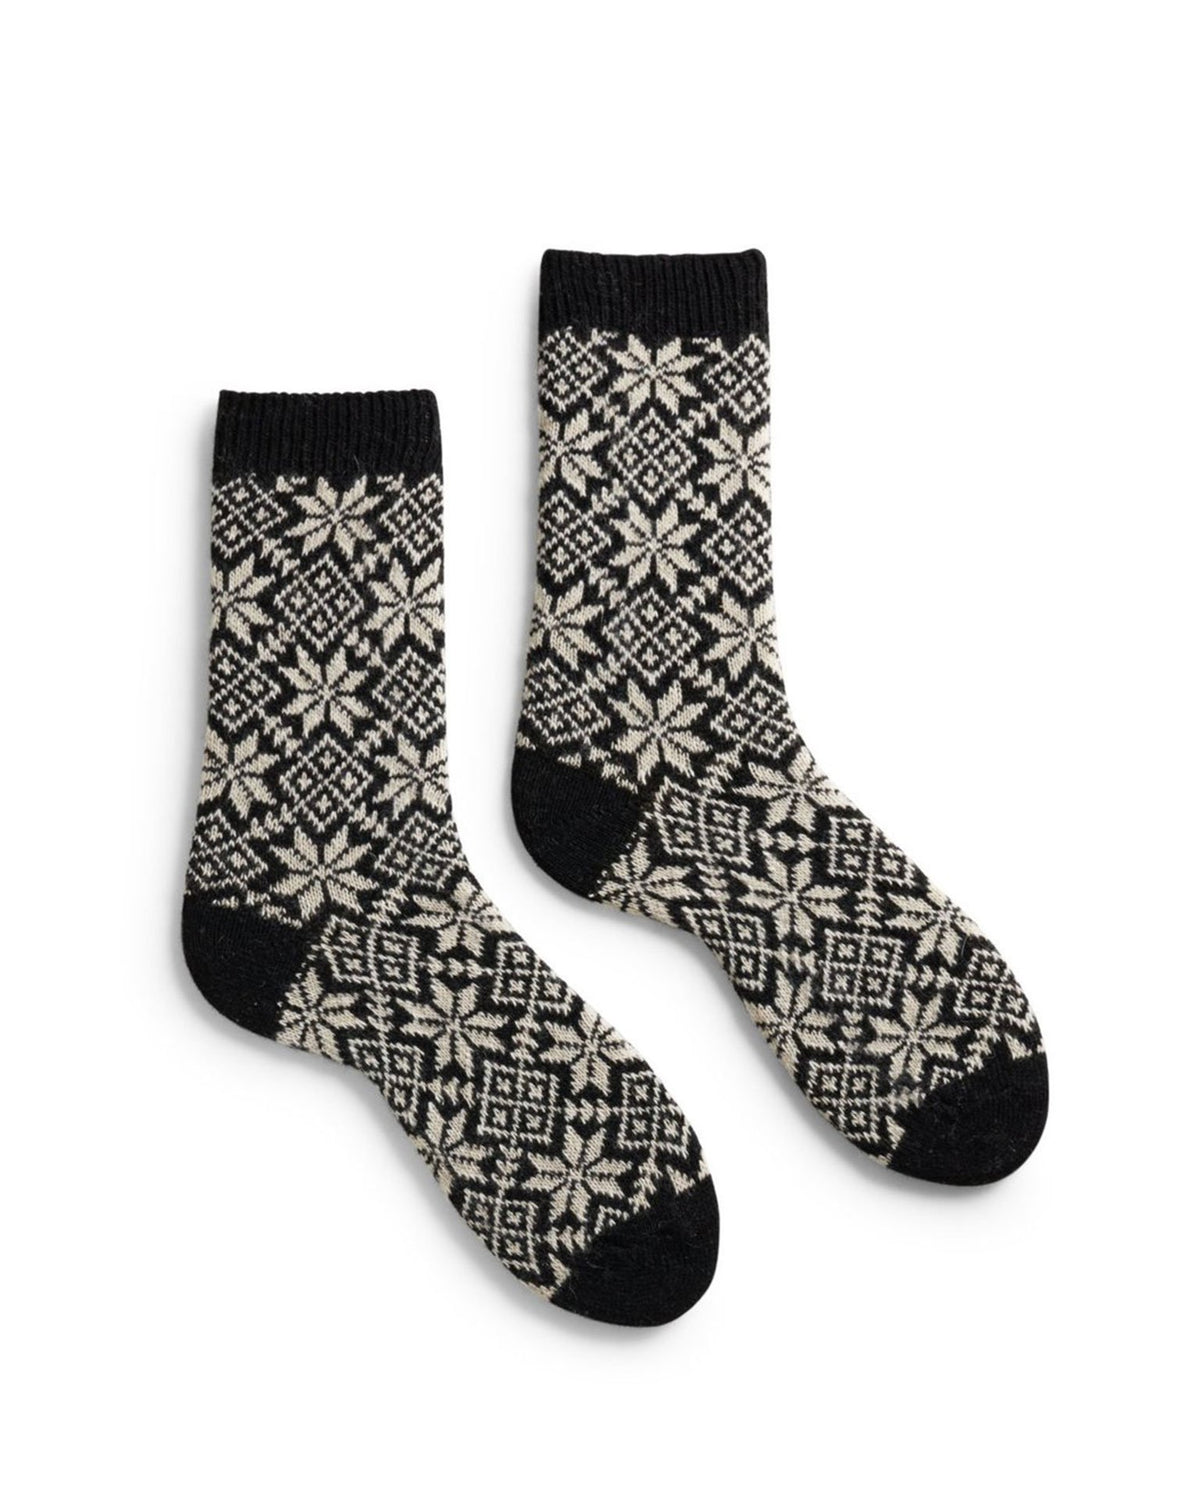 Lisa B. Accessories Black / O/S Snowflake Socks